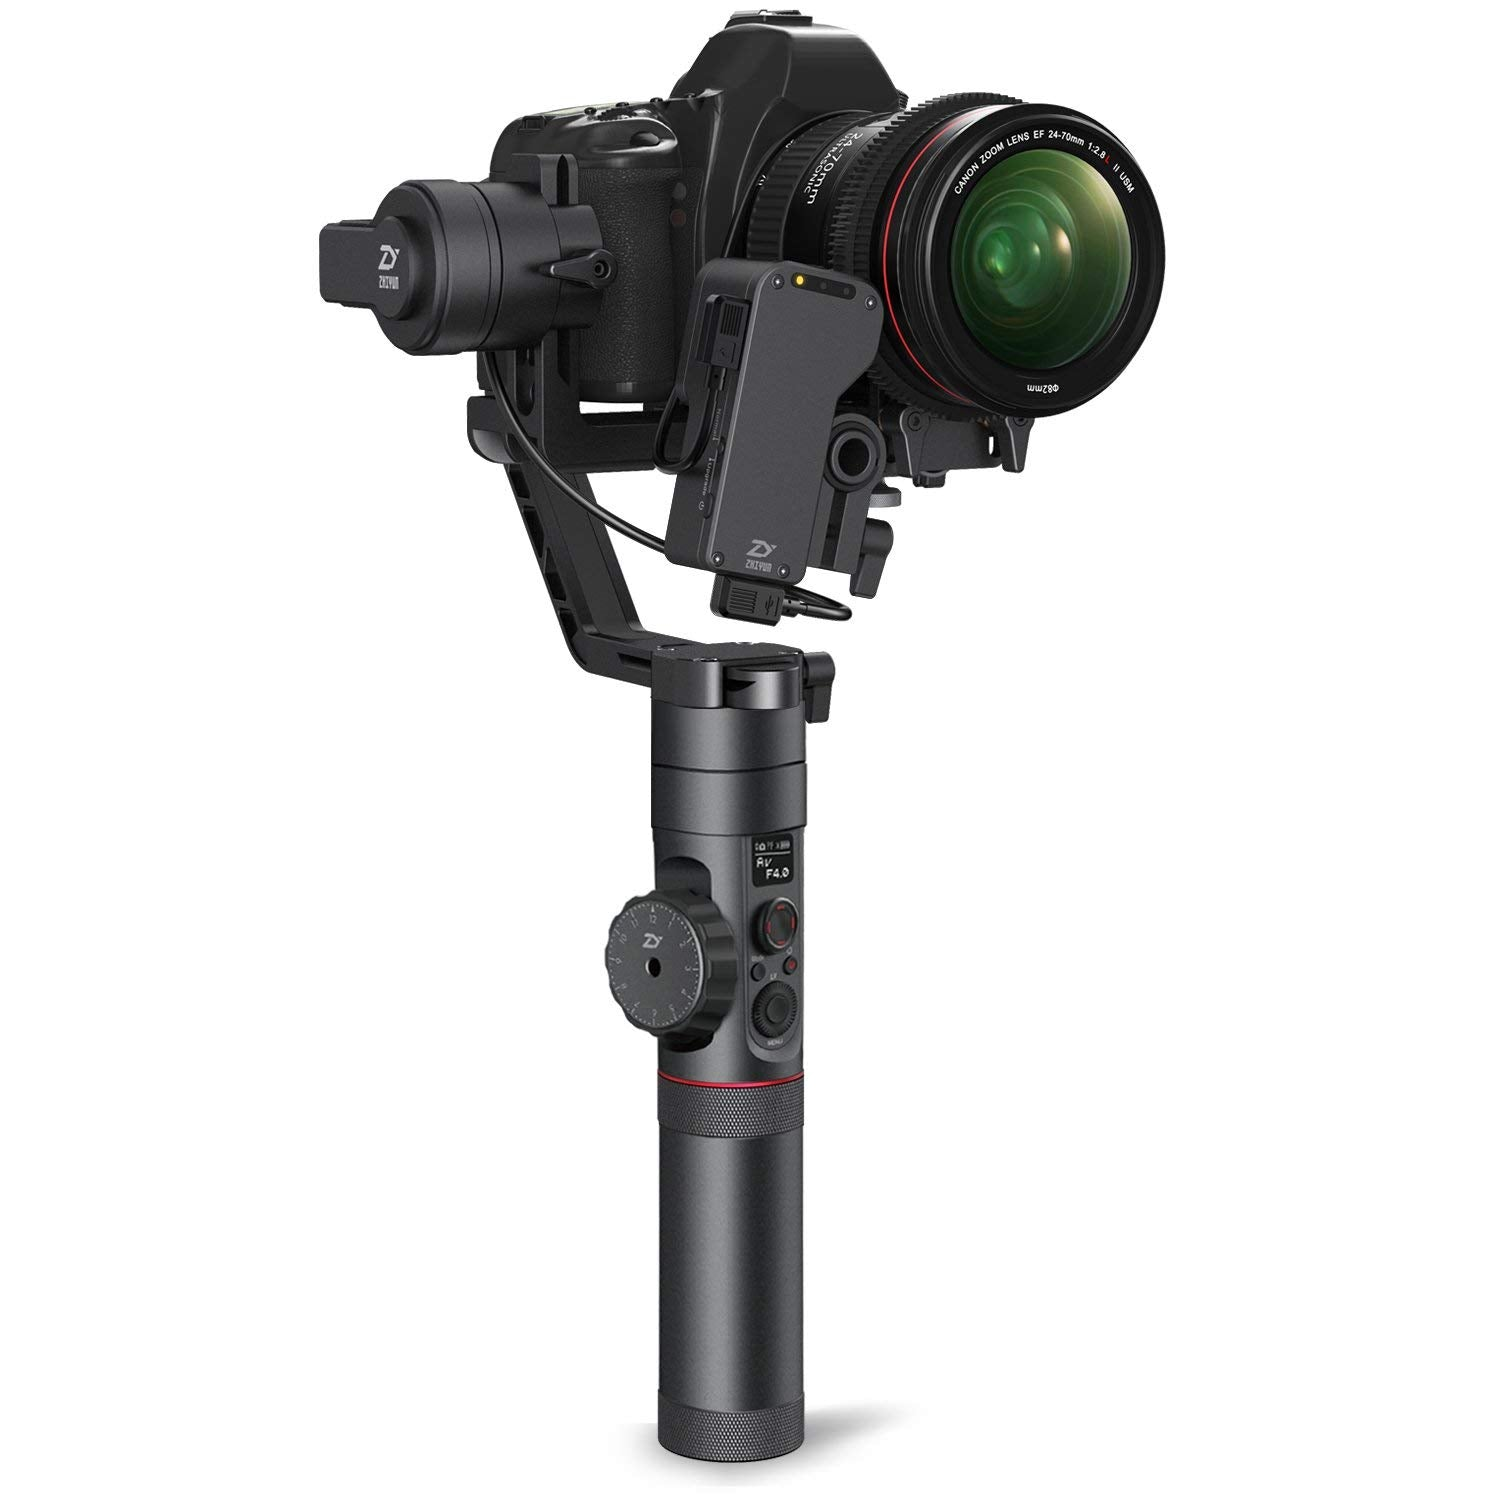 Official Crane 2 Gravity Adjustment Plate for 1DX to Adjust Heavy Camera and Lens Combos Like Canon EOS Zhiyun